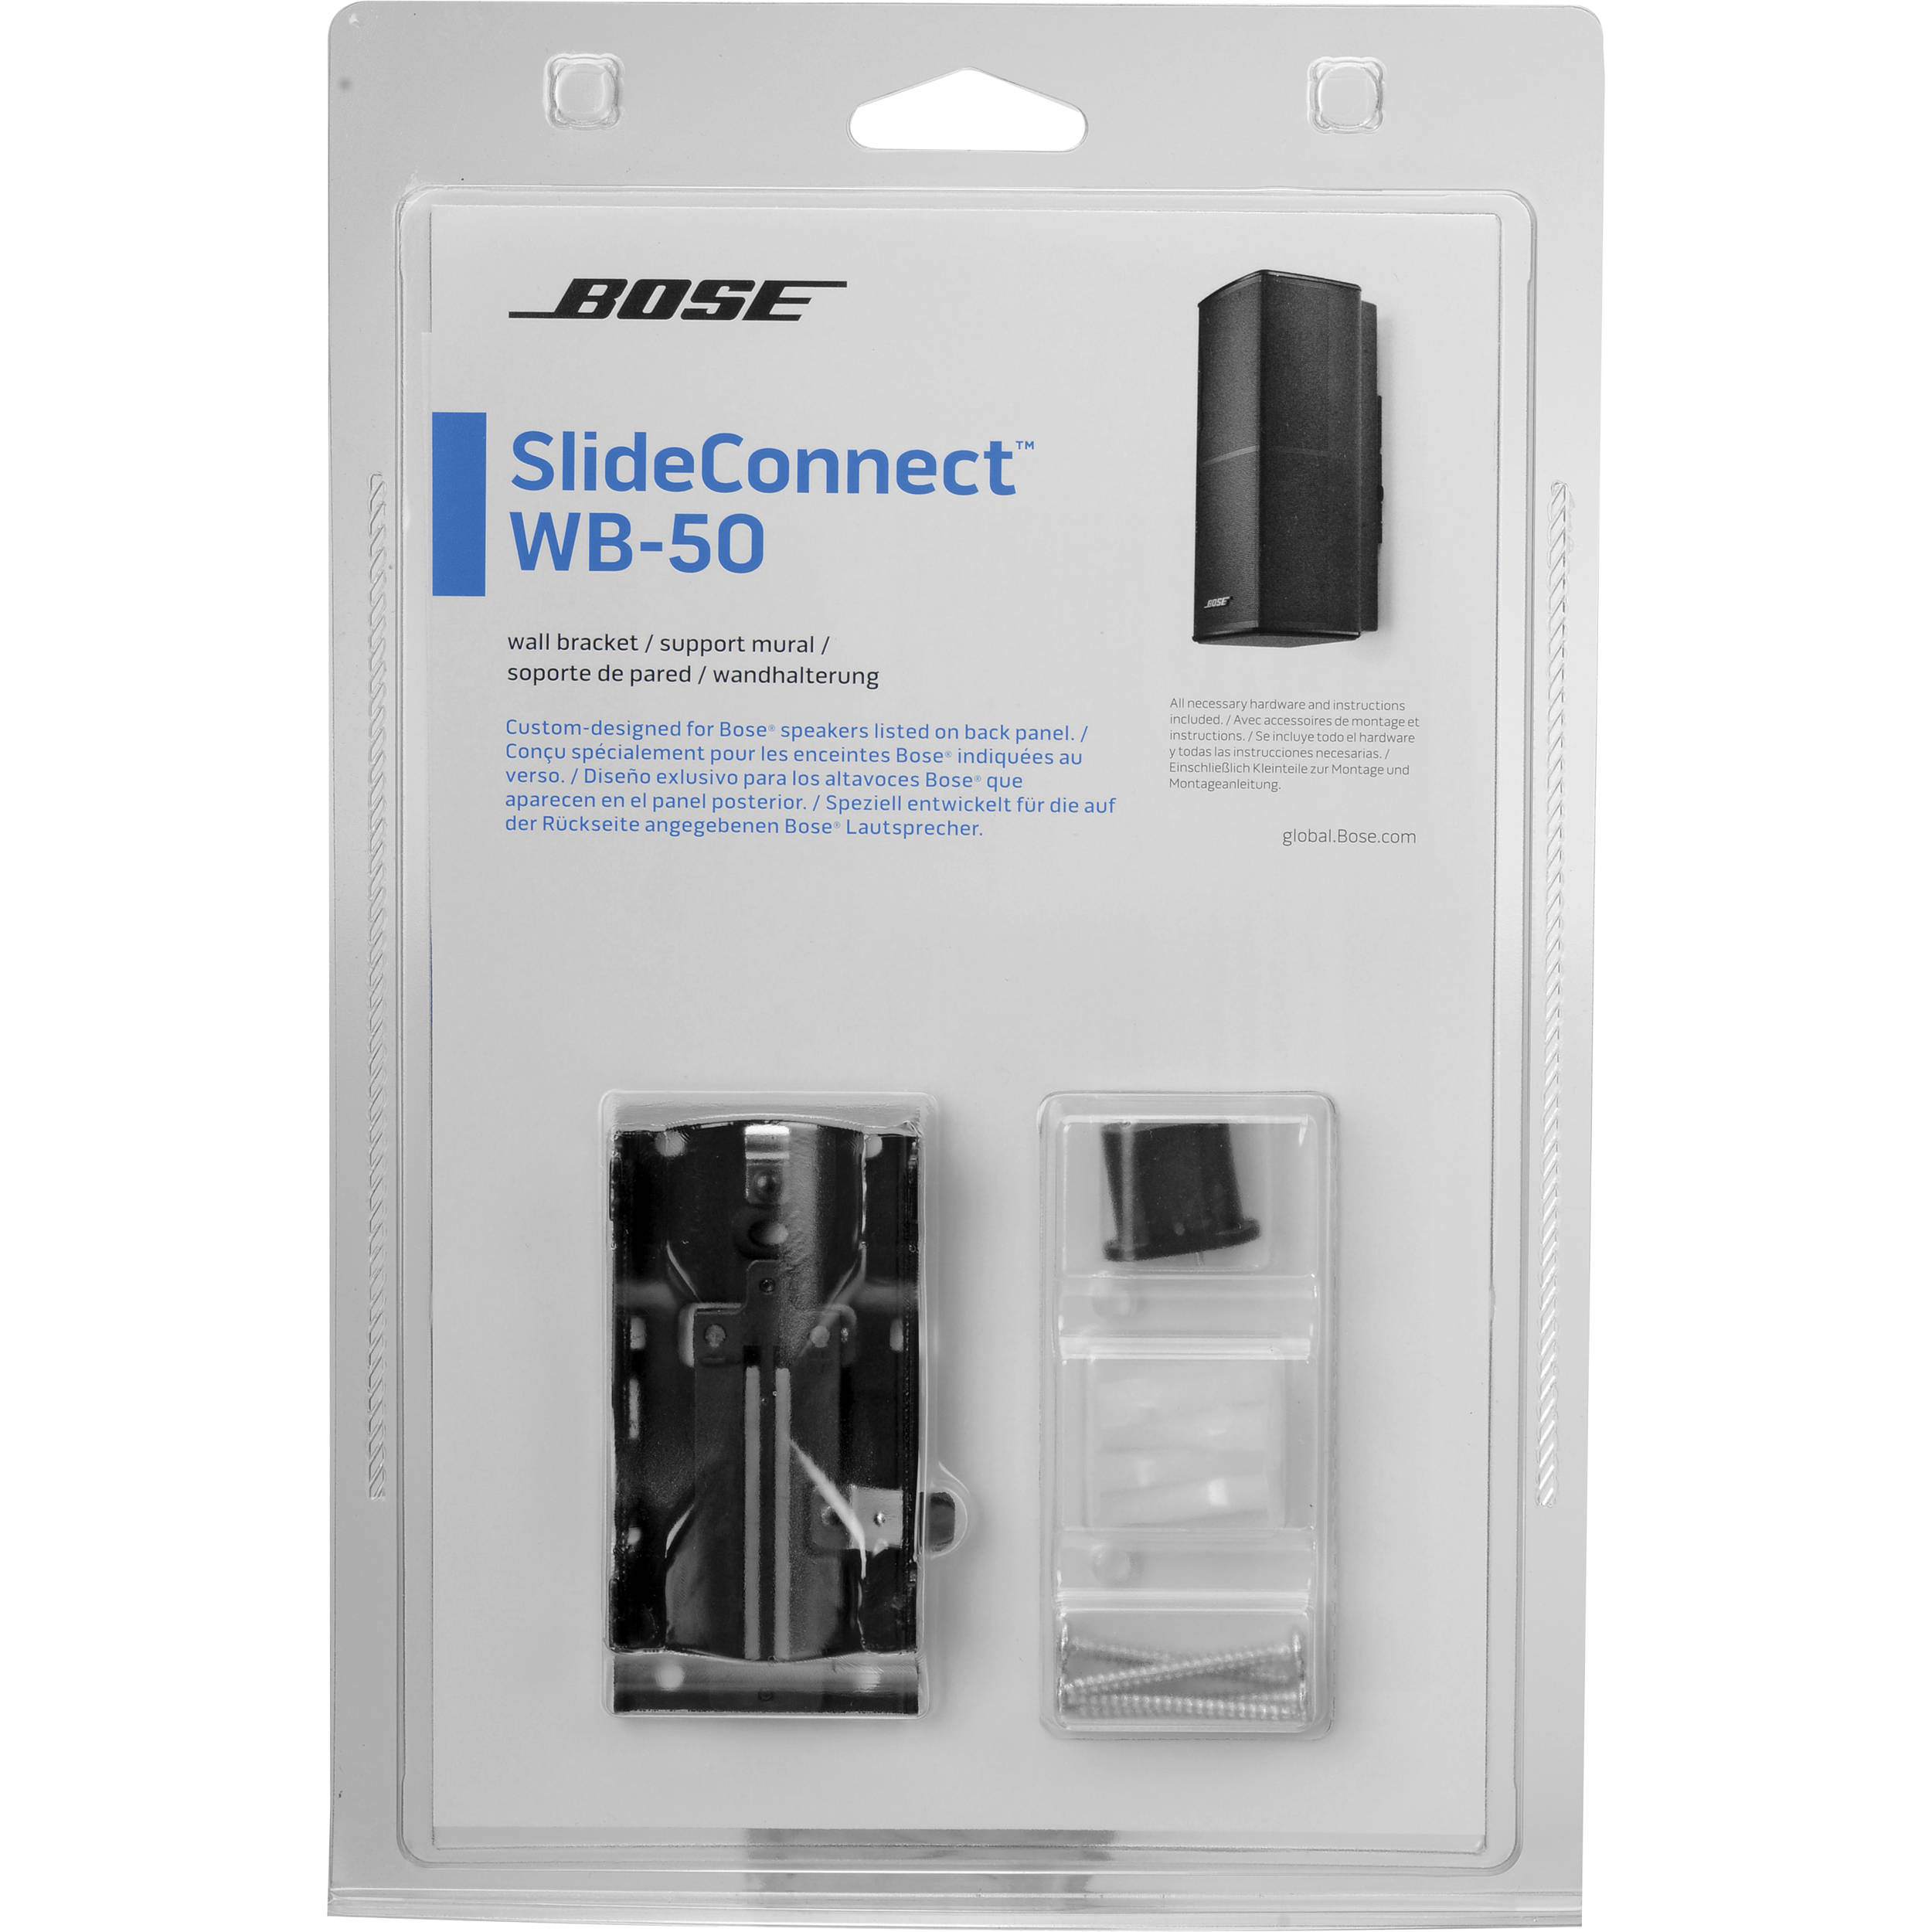 Bose SlideConnect WB50 Wall Bracket Black 7164020010 BH